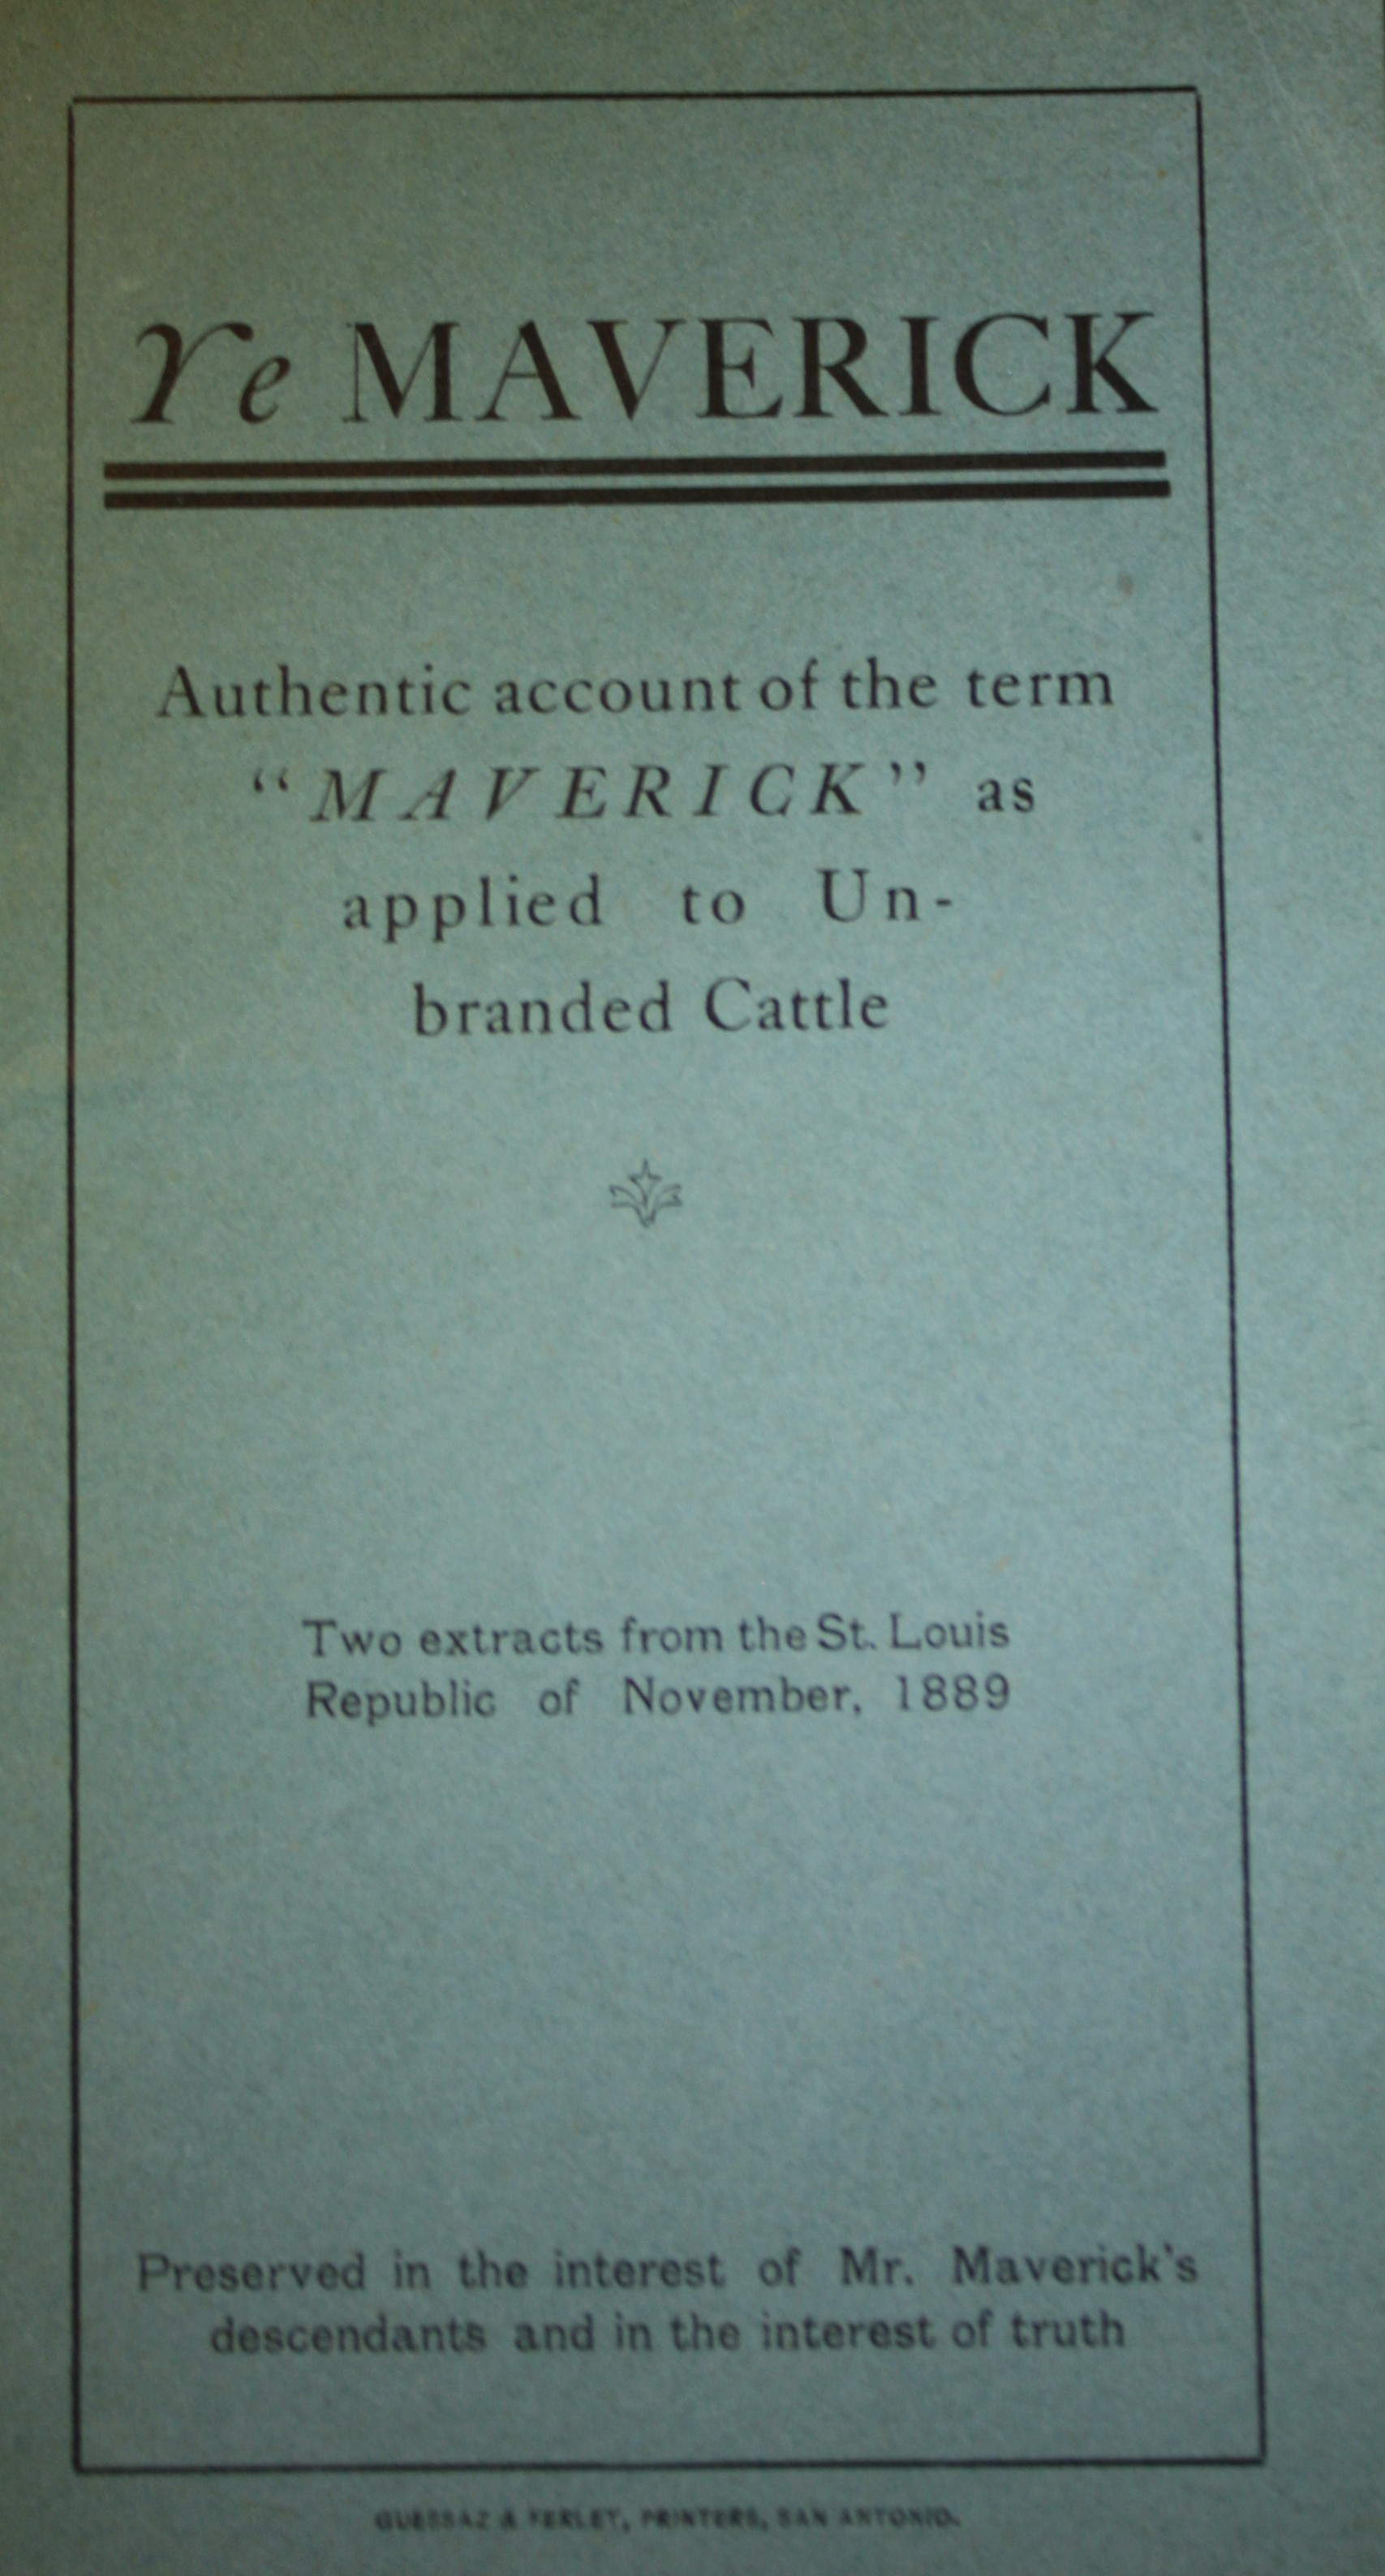 Image for Ye Maverick Authentic Account of the Term Maverick As Applied to Un-branded Cattle Two Extracts From the St. Louis Republic of November 1889, Preserved in the Interest of Mr. Maverick's Descendants and in the Interest of Truth